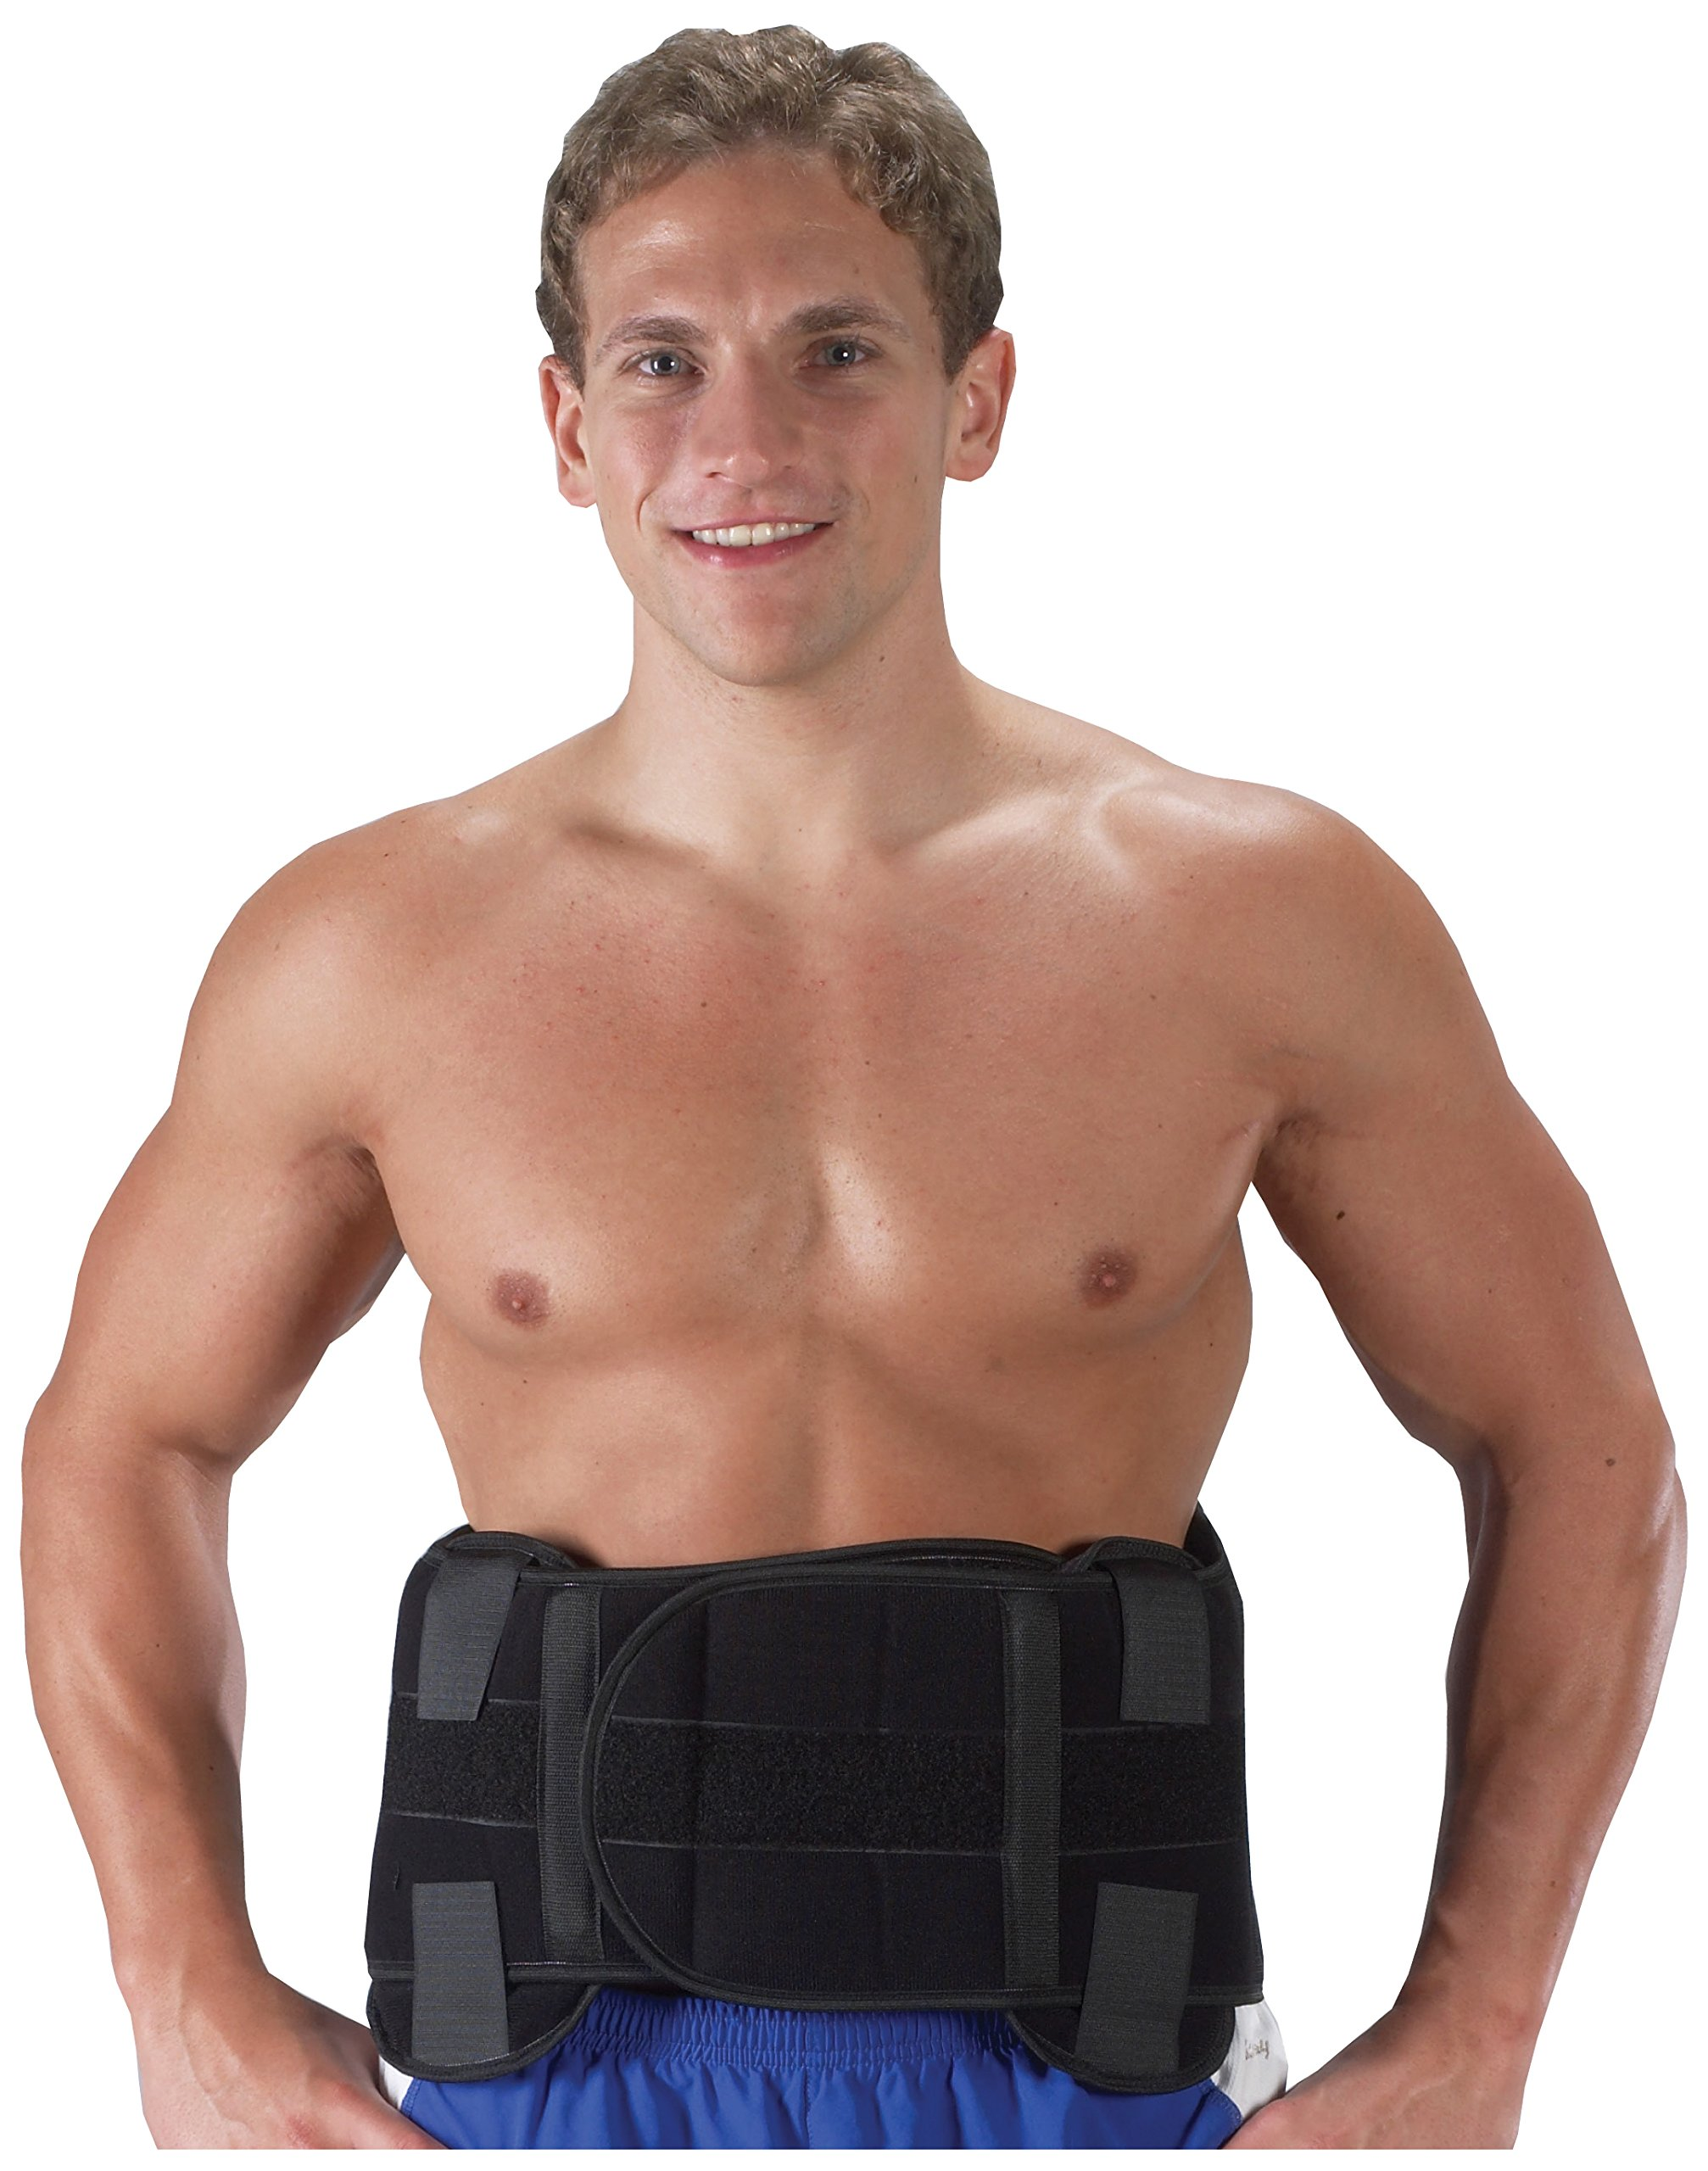 Bilt-Rite Mastex Health Lumbo Protech Extreme Back Support, Black, Medium by Bilt-Rite Mastex Health